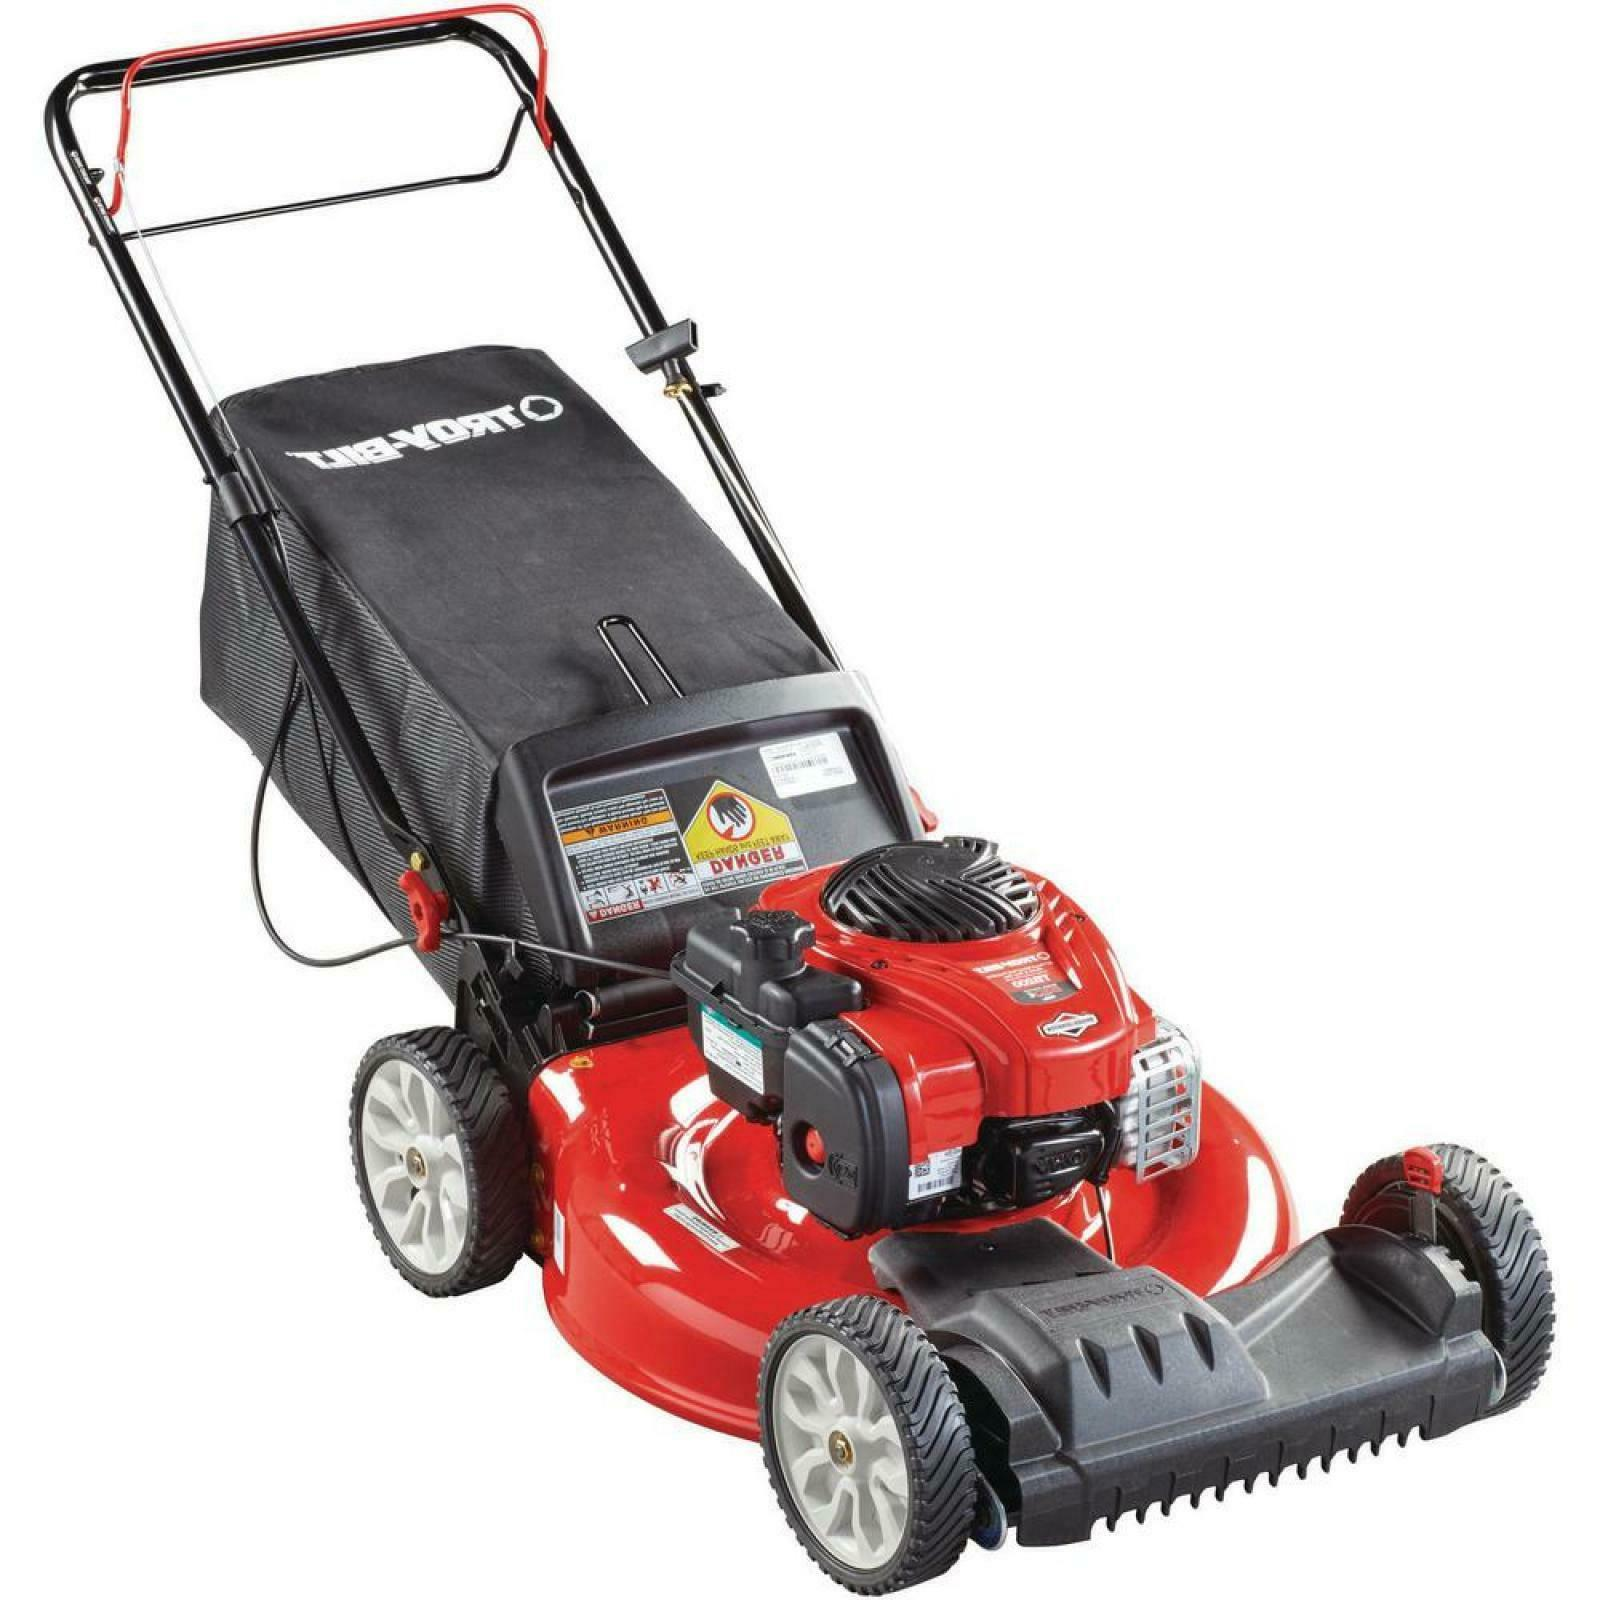 Troy Self Propelled Lawn Mower in 140cc Action